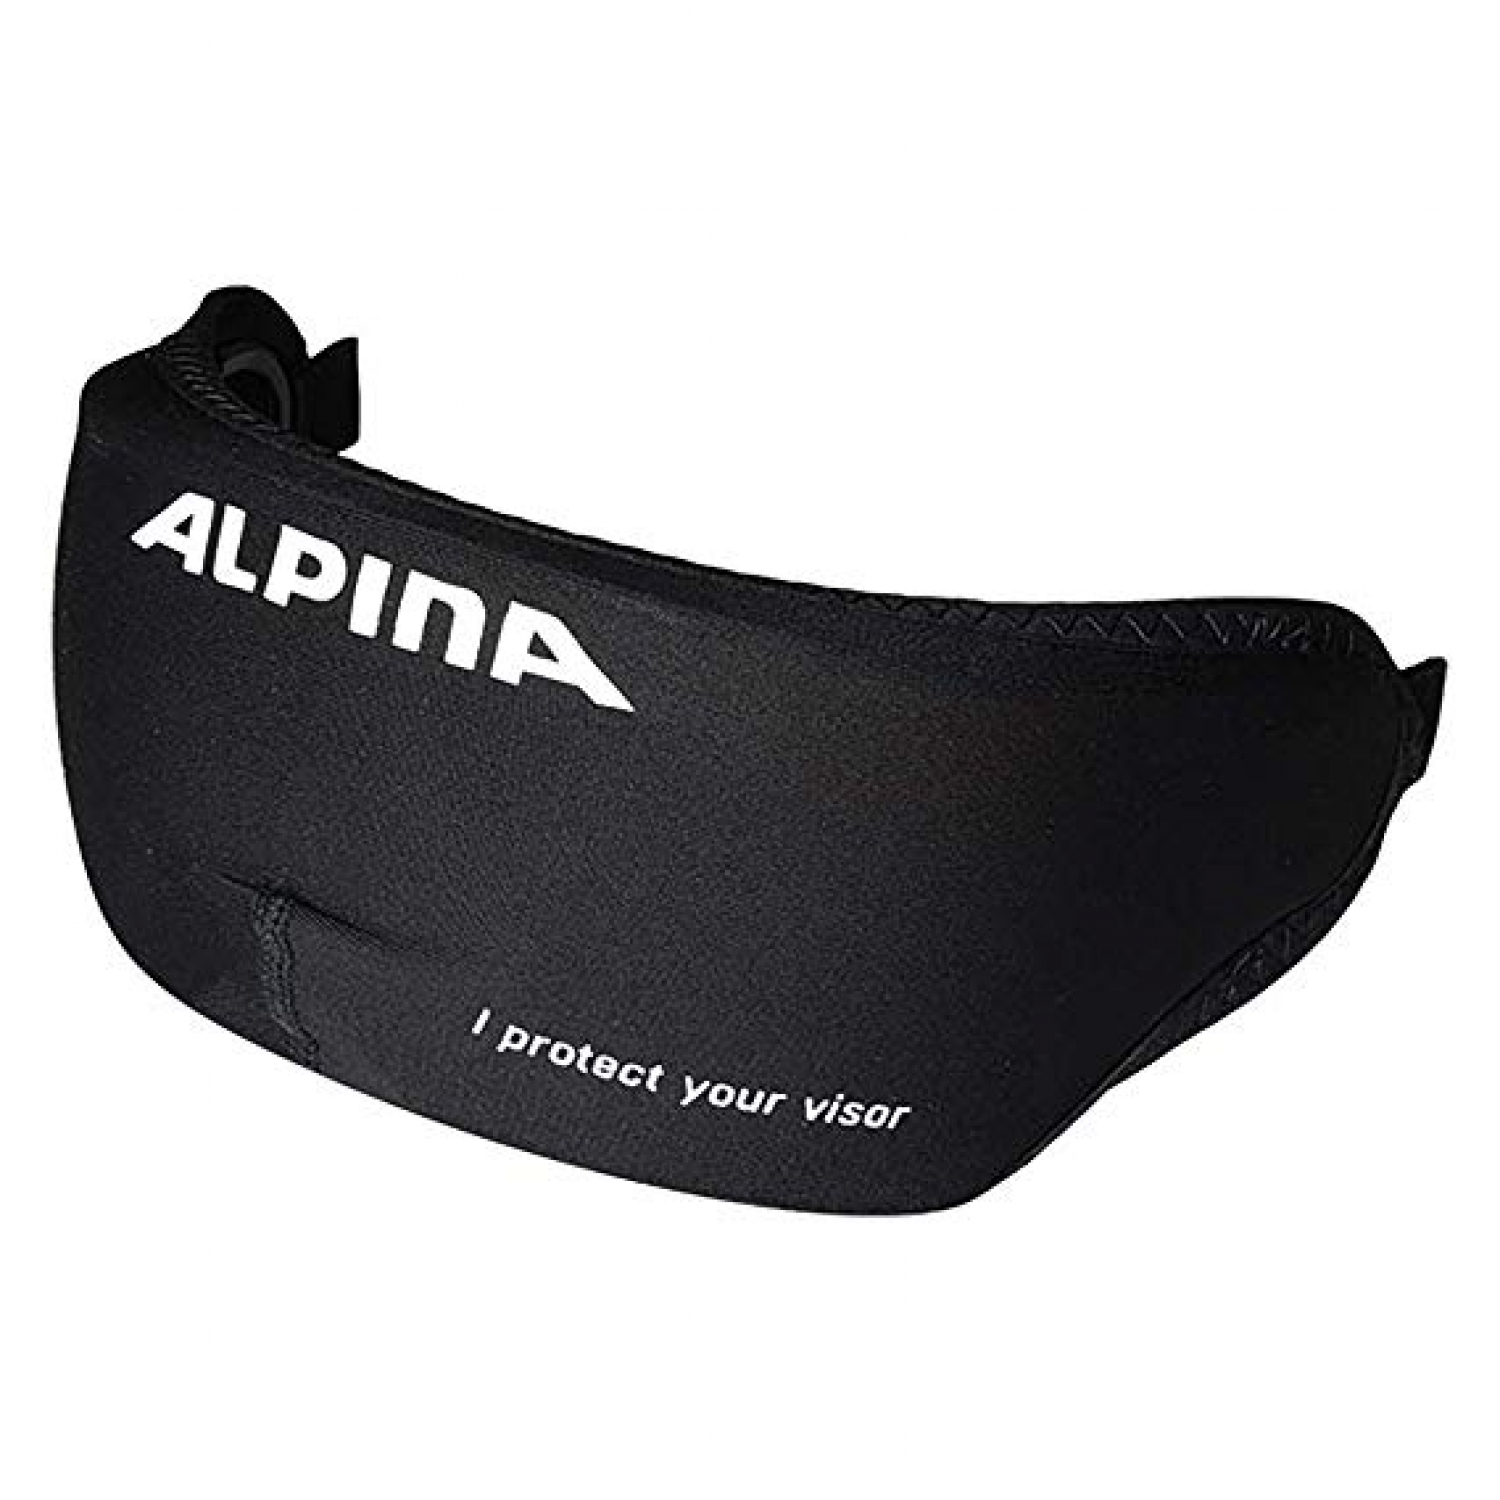 Alpina Helmet Visor Cover black